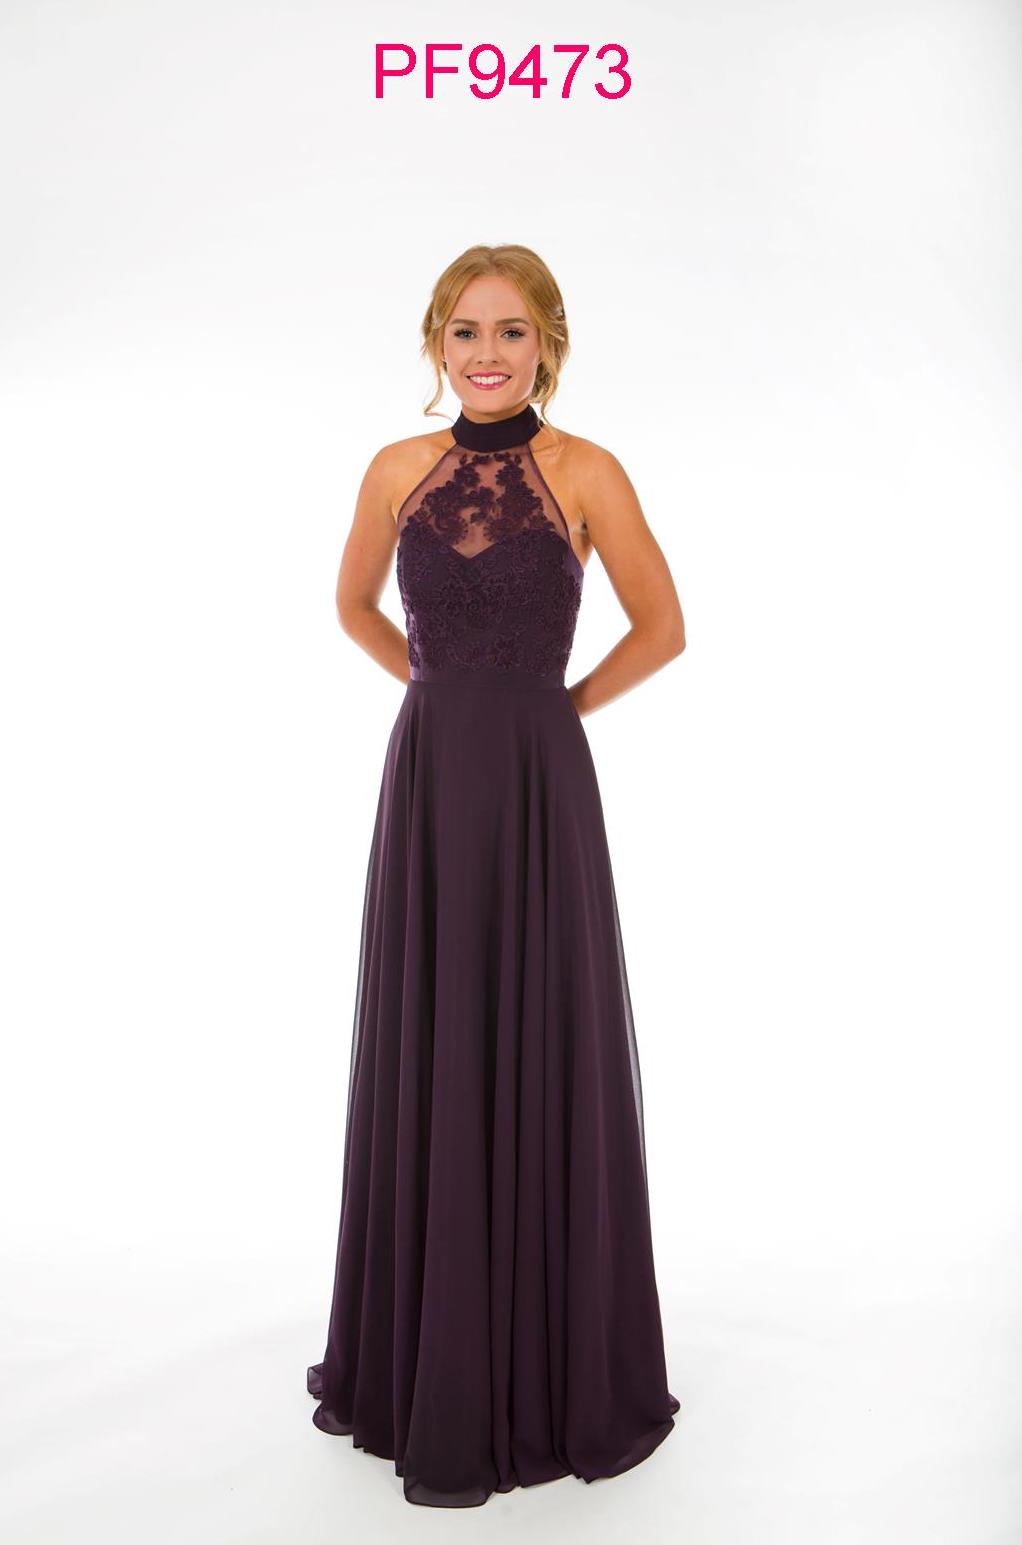 Prom girl wearing damson coloured gown with racer neck, lace bodice and full chiffon skirt.